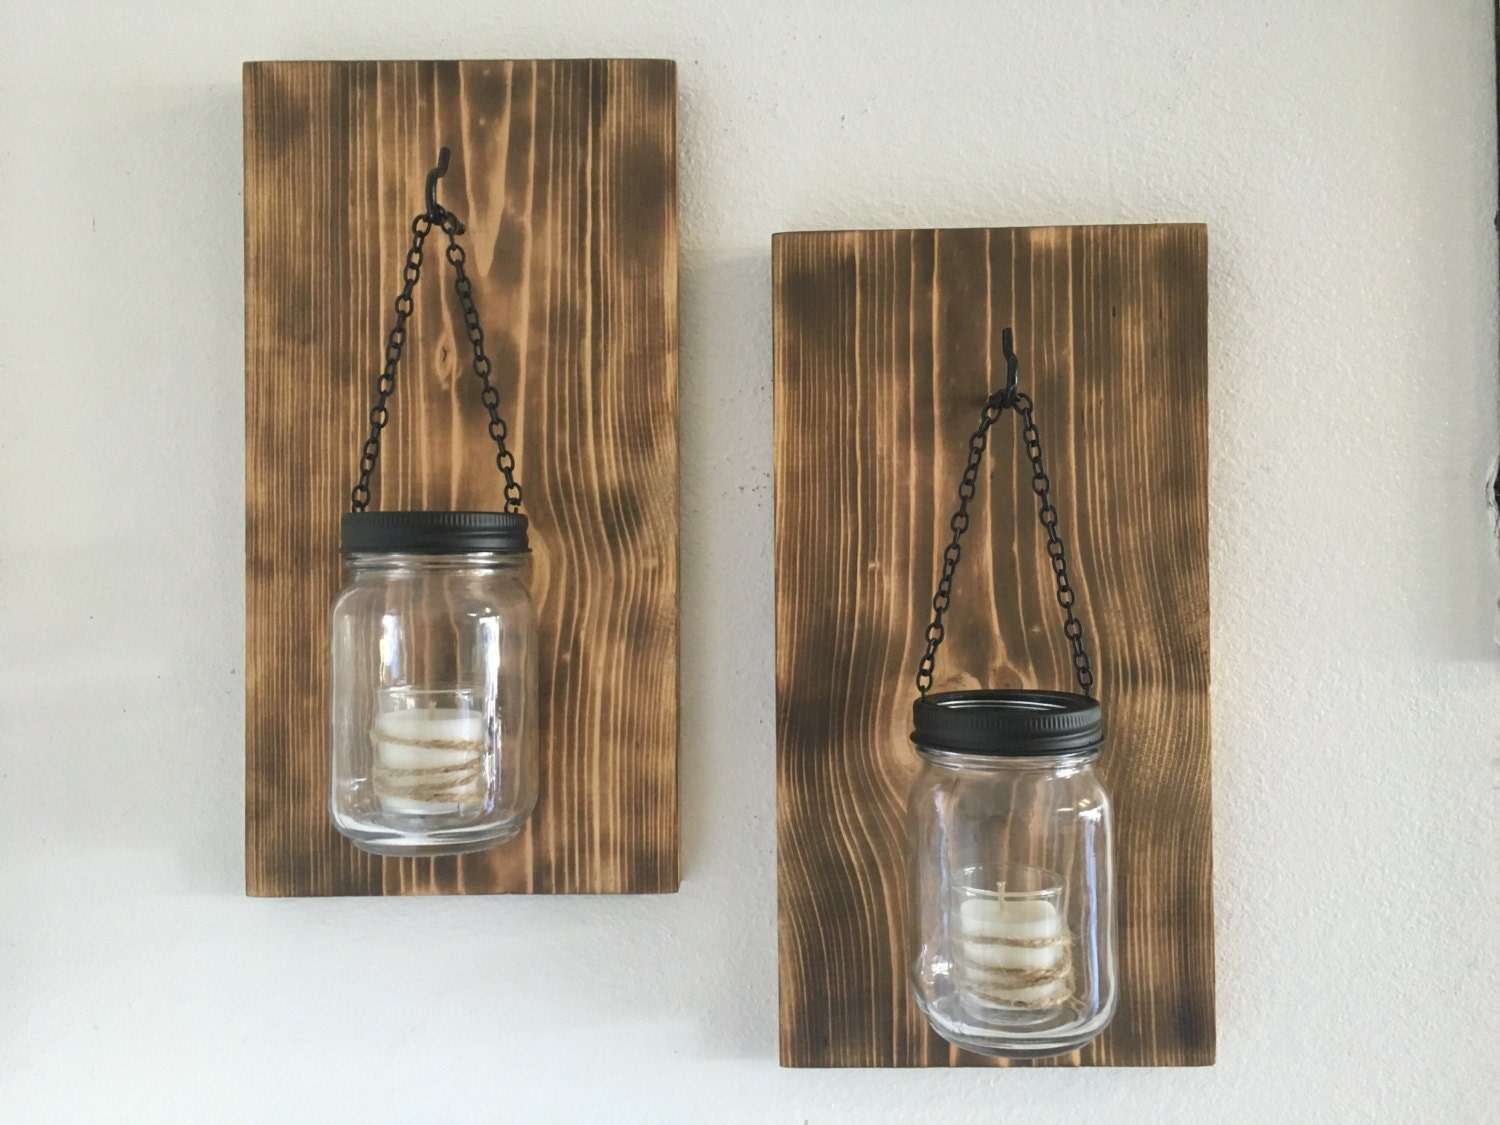 hillbilly mason jar sconces torched wood sconces wall - 🔎zoom